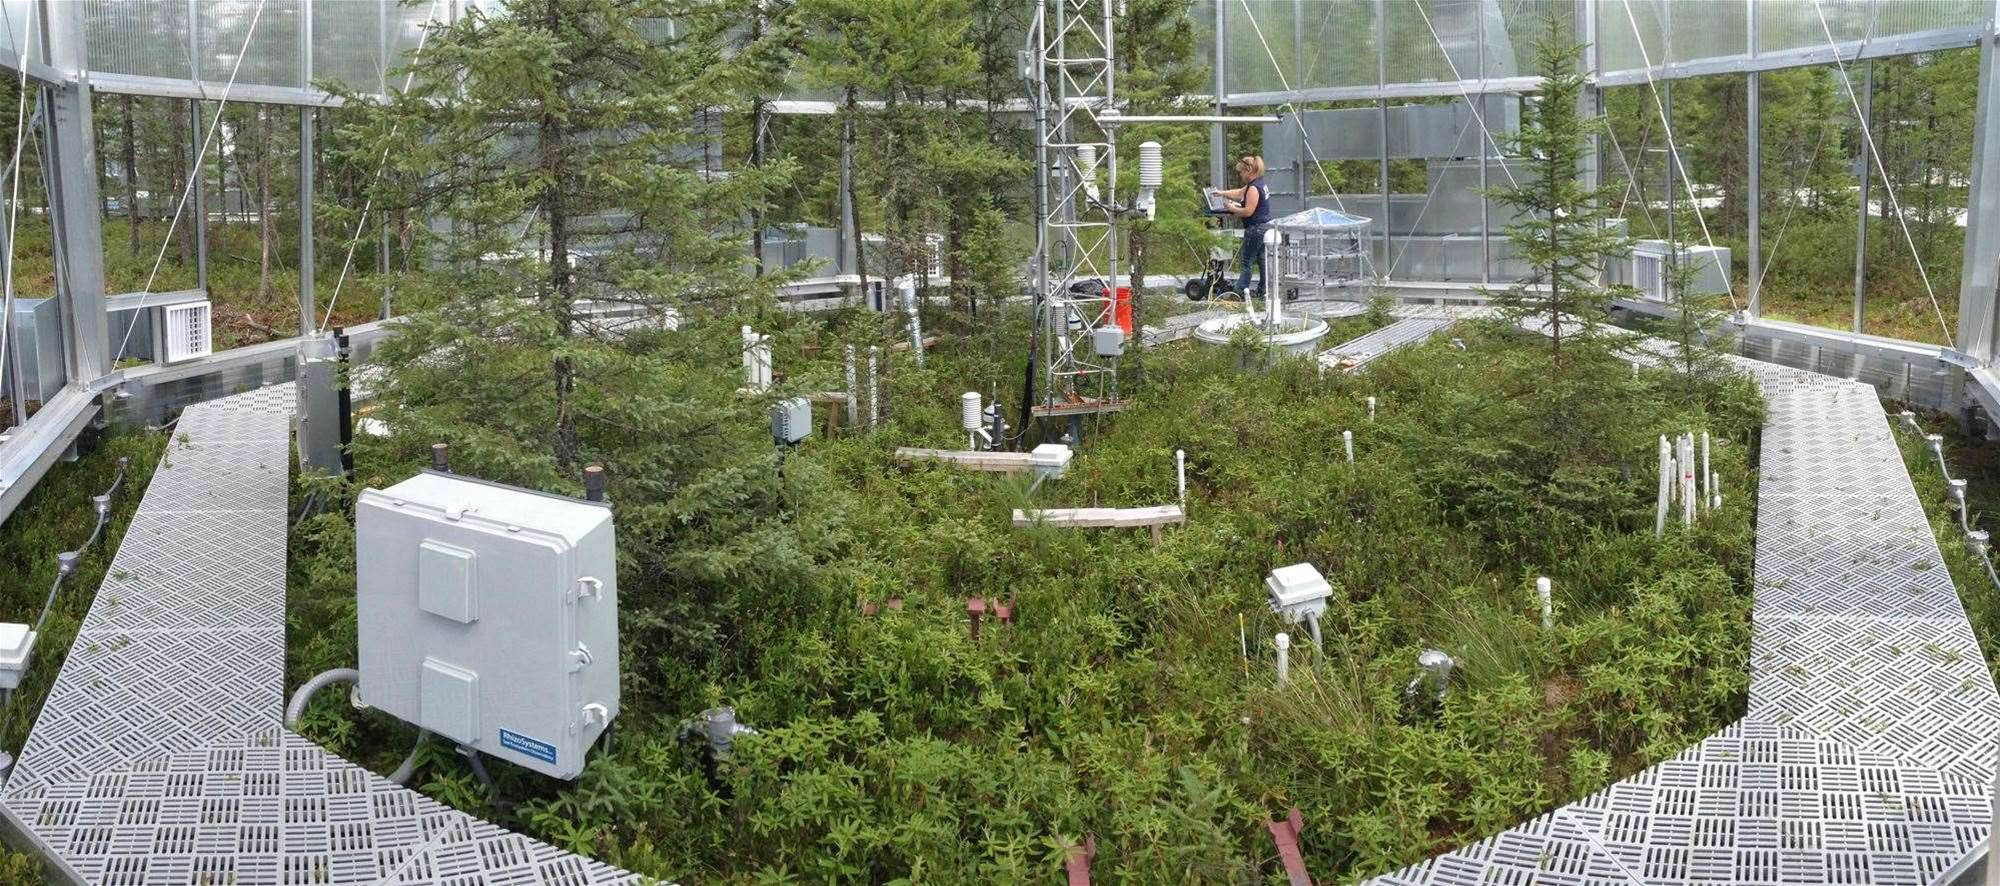 Caged Wetlands Could Show The Future Impacts Of Climate Change